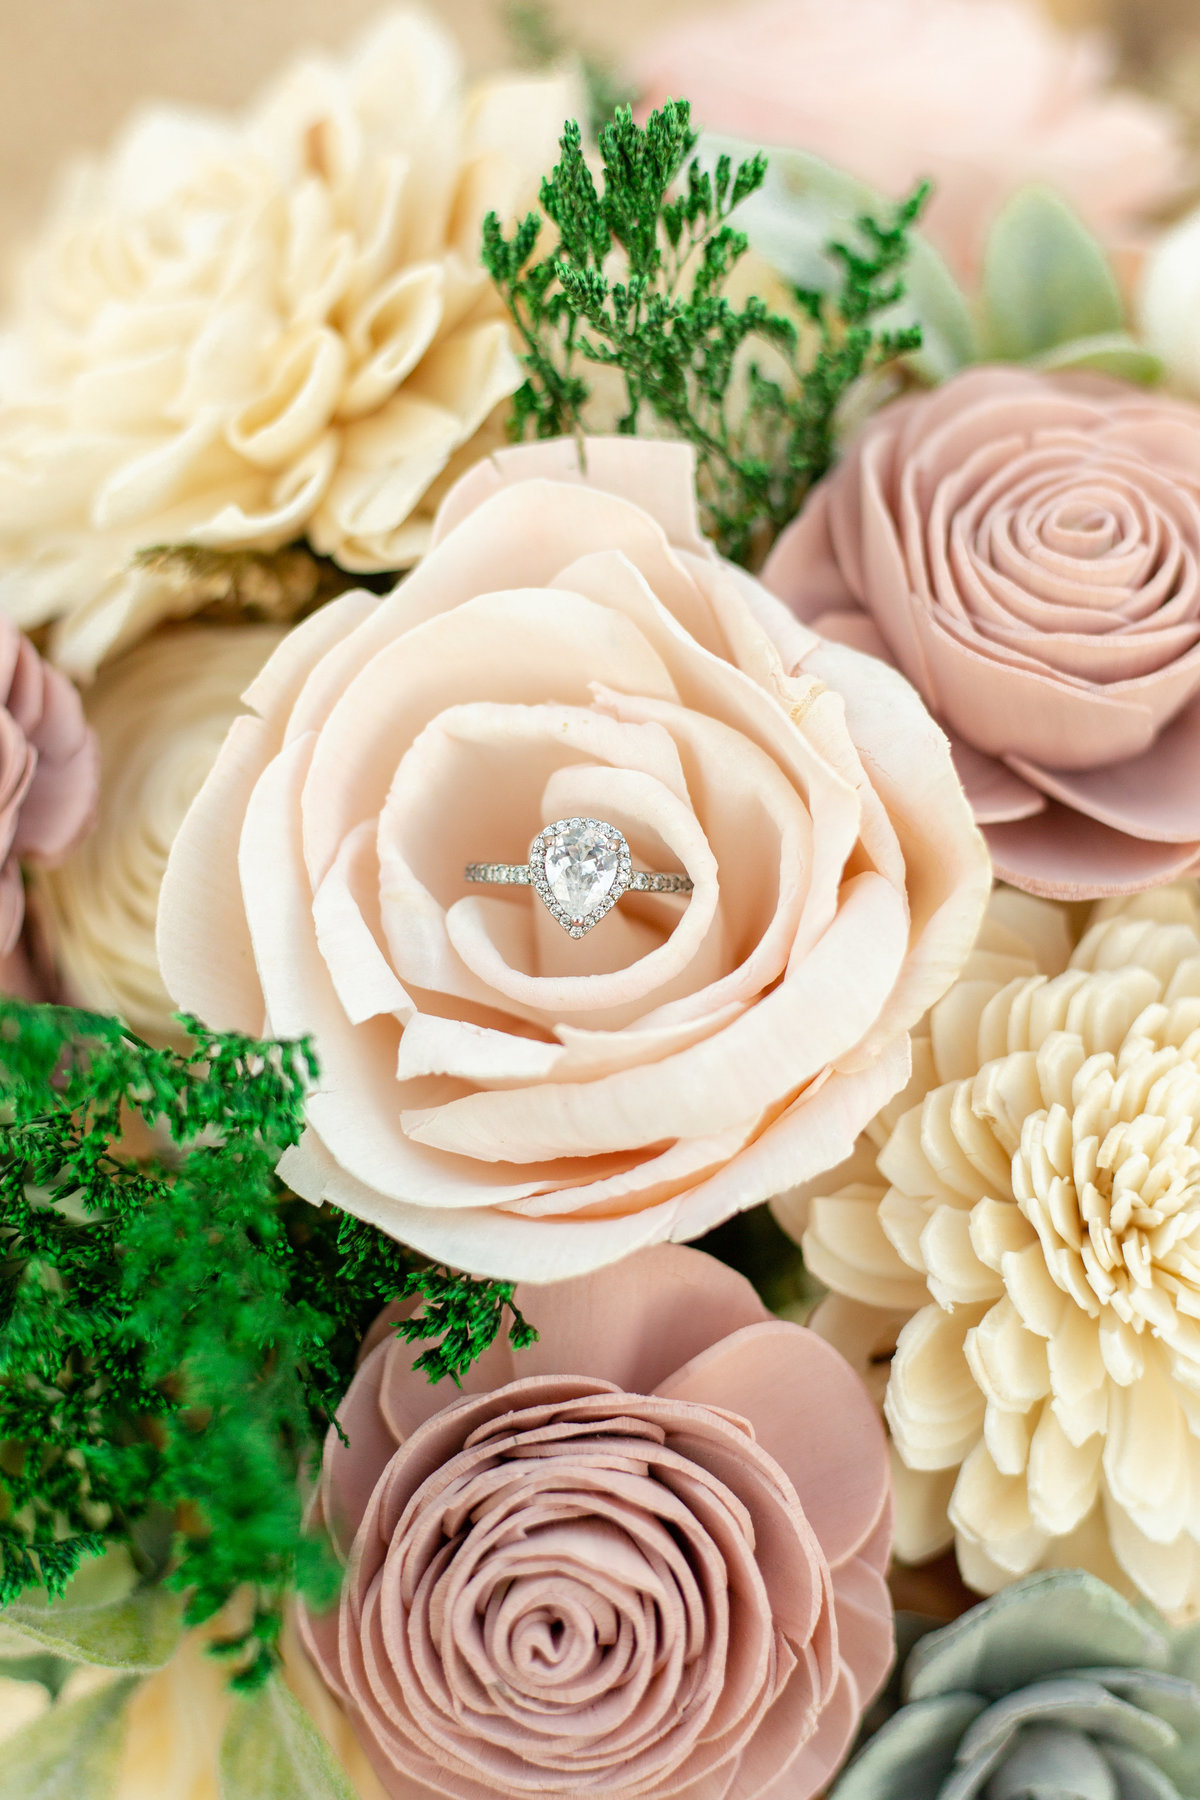 Pear shaped engagement ring close up in blush and cream wooden flower arrangement in Davenport, Florida